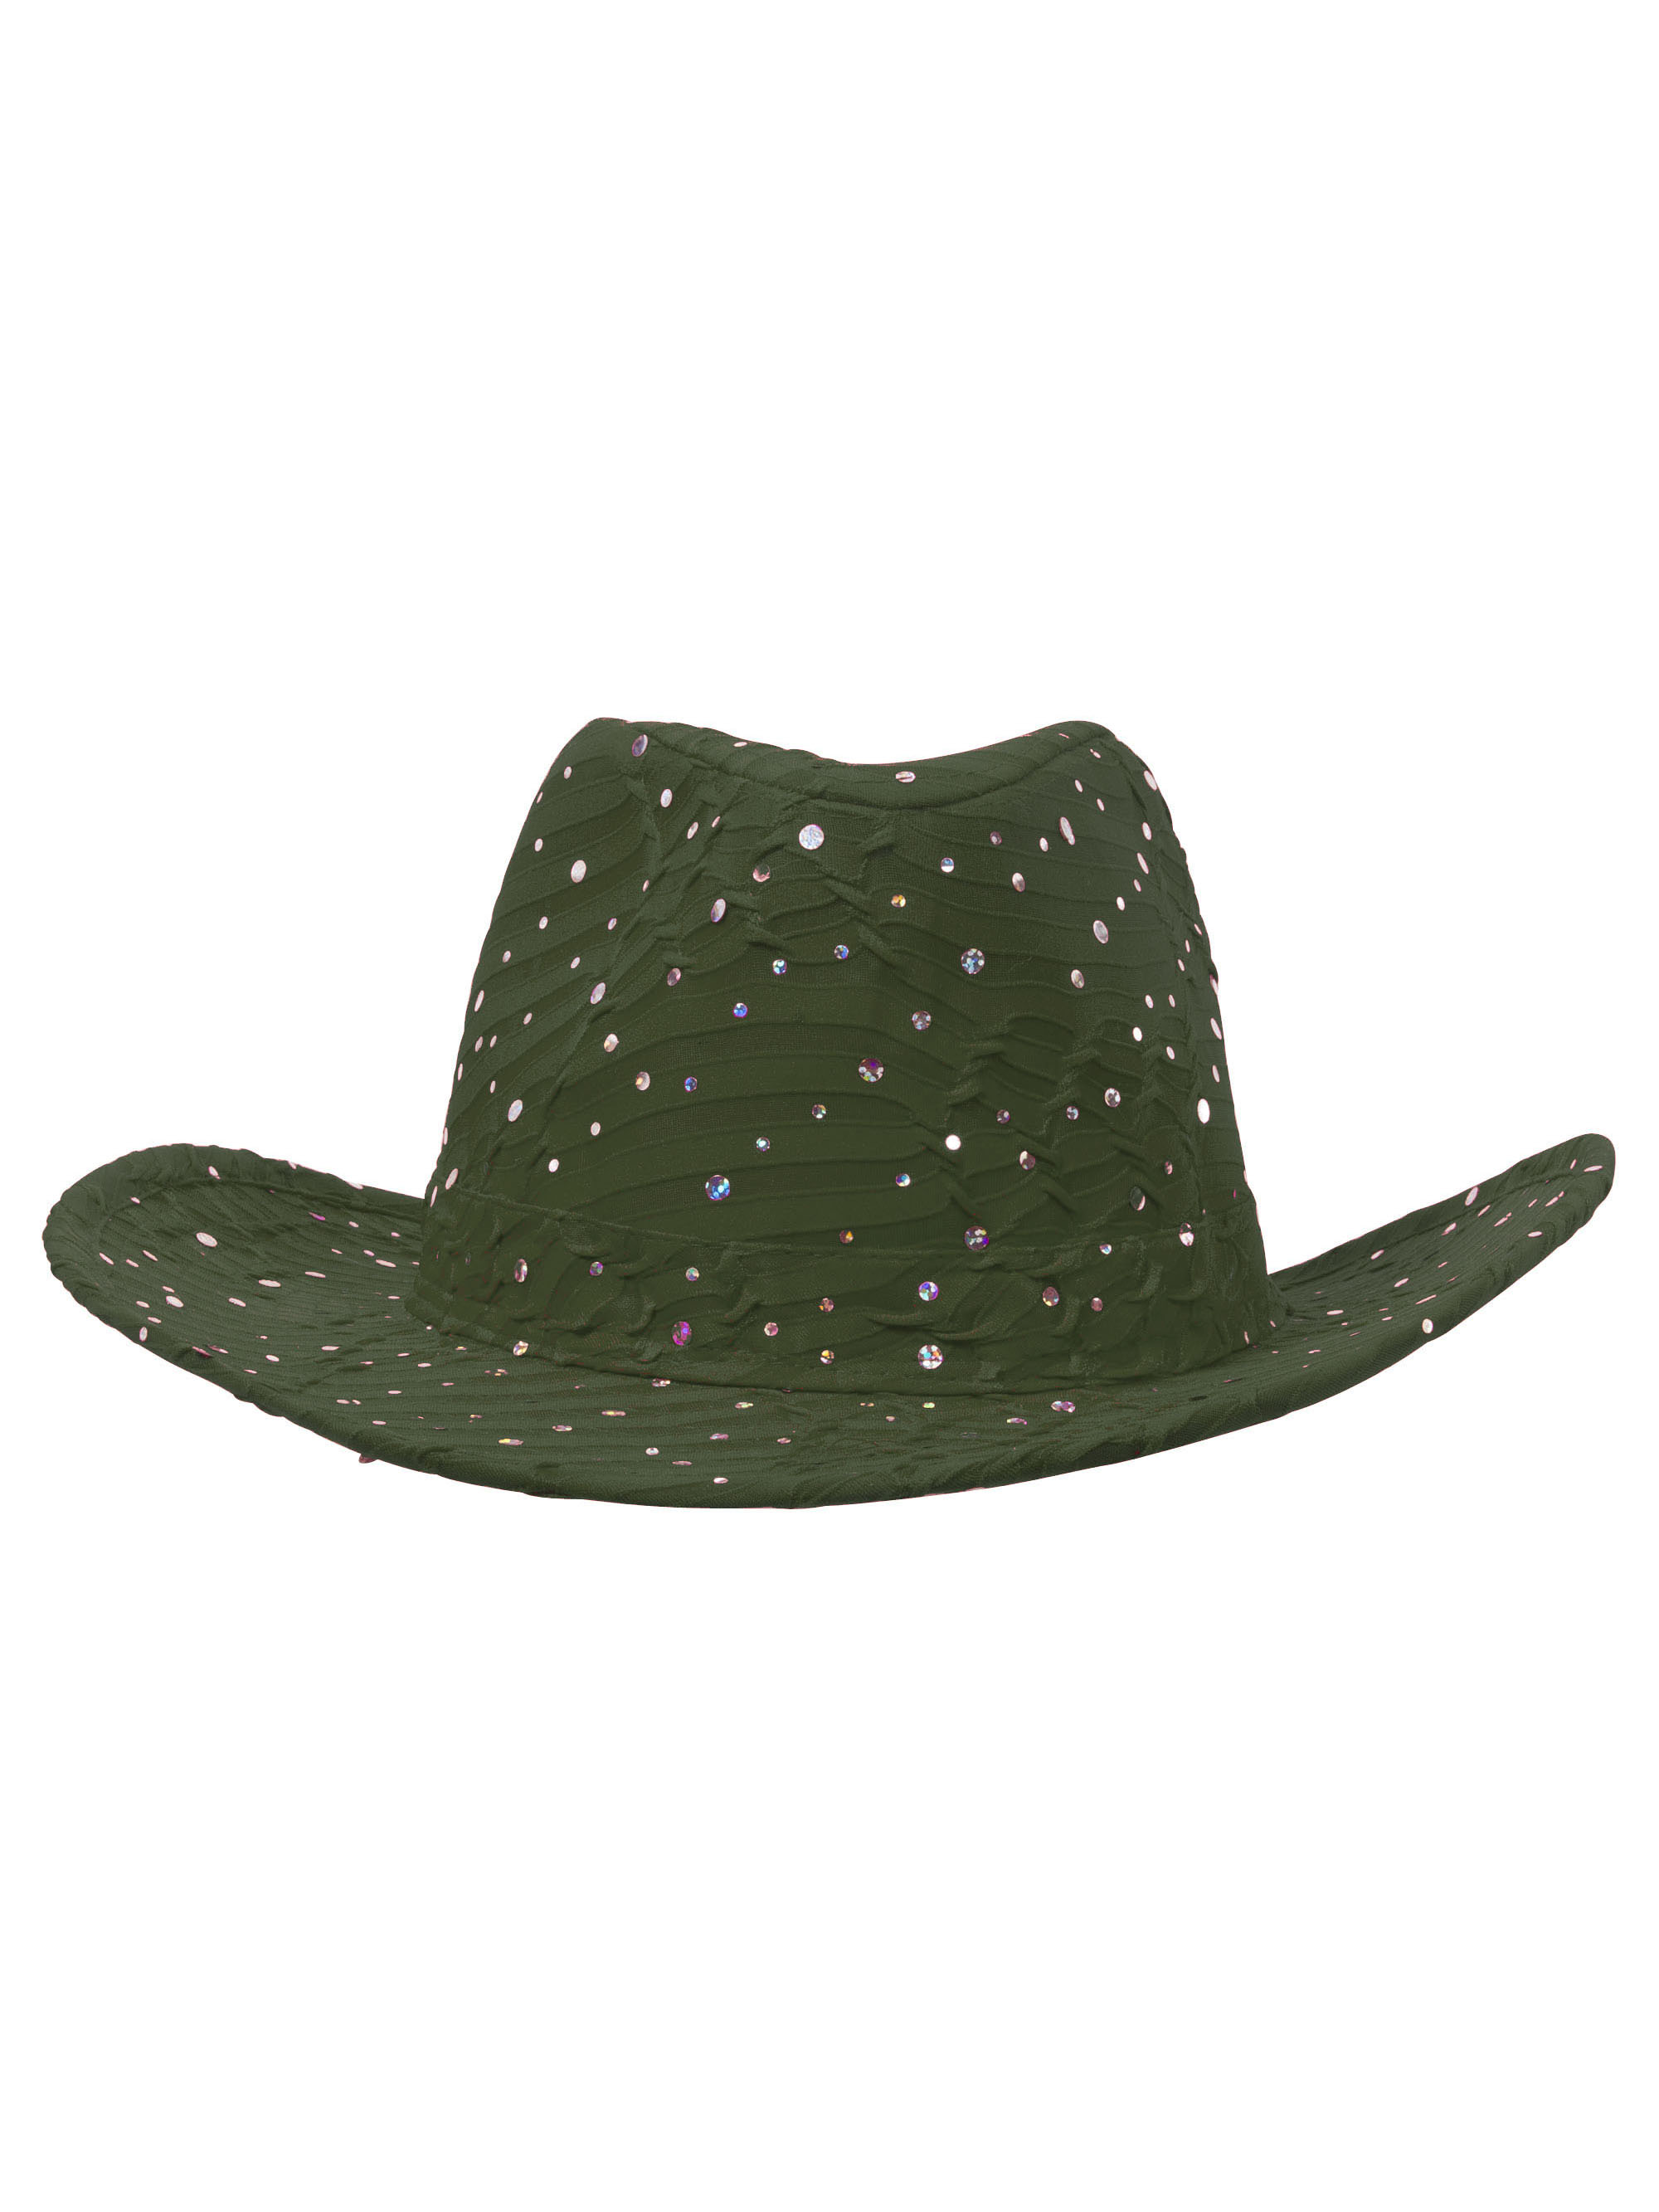 034418a70f2 Glitter Sequin Trim Cowboy Hat in 21 Assorted Colors - Orange